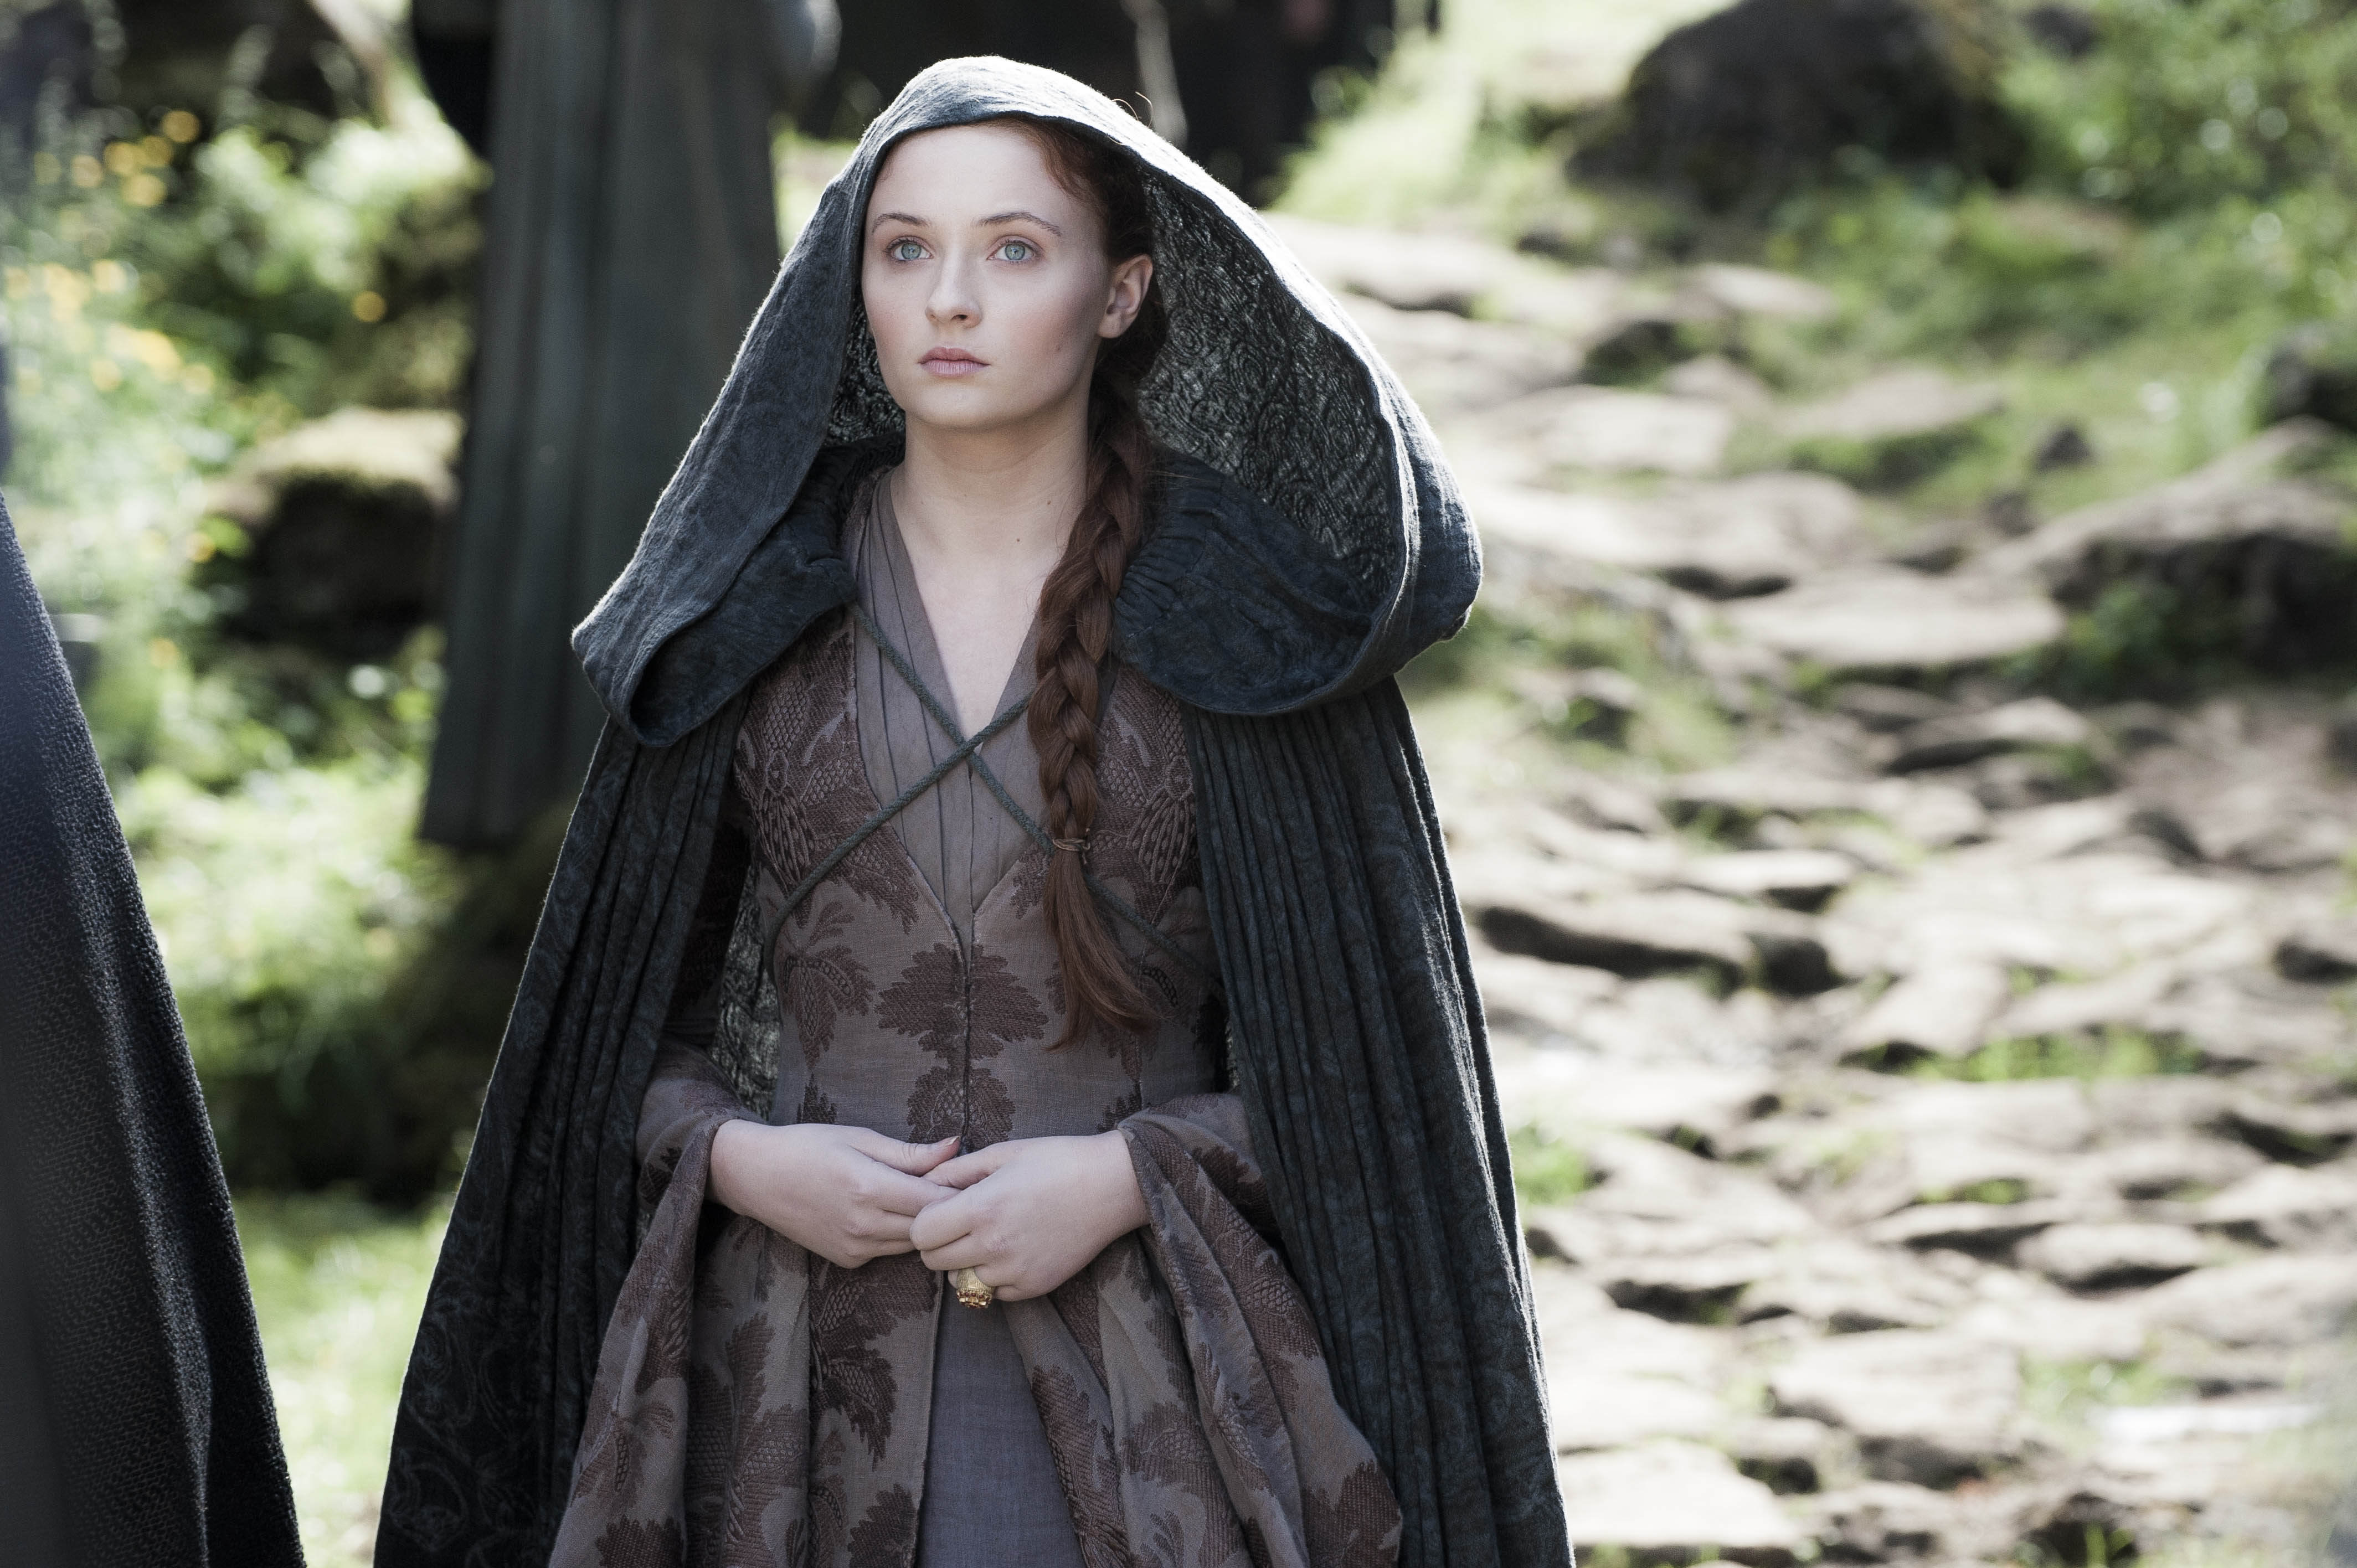 Season-4-Episode-5-First-of-His-Name-game-of-thrones-37070107-4256-2832